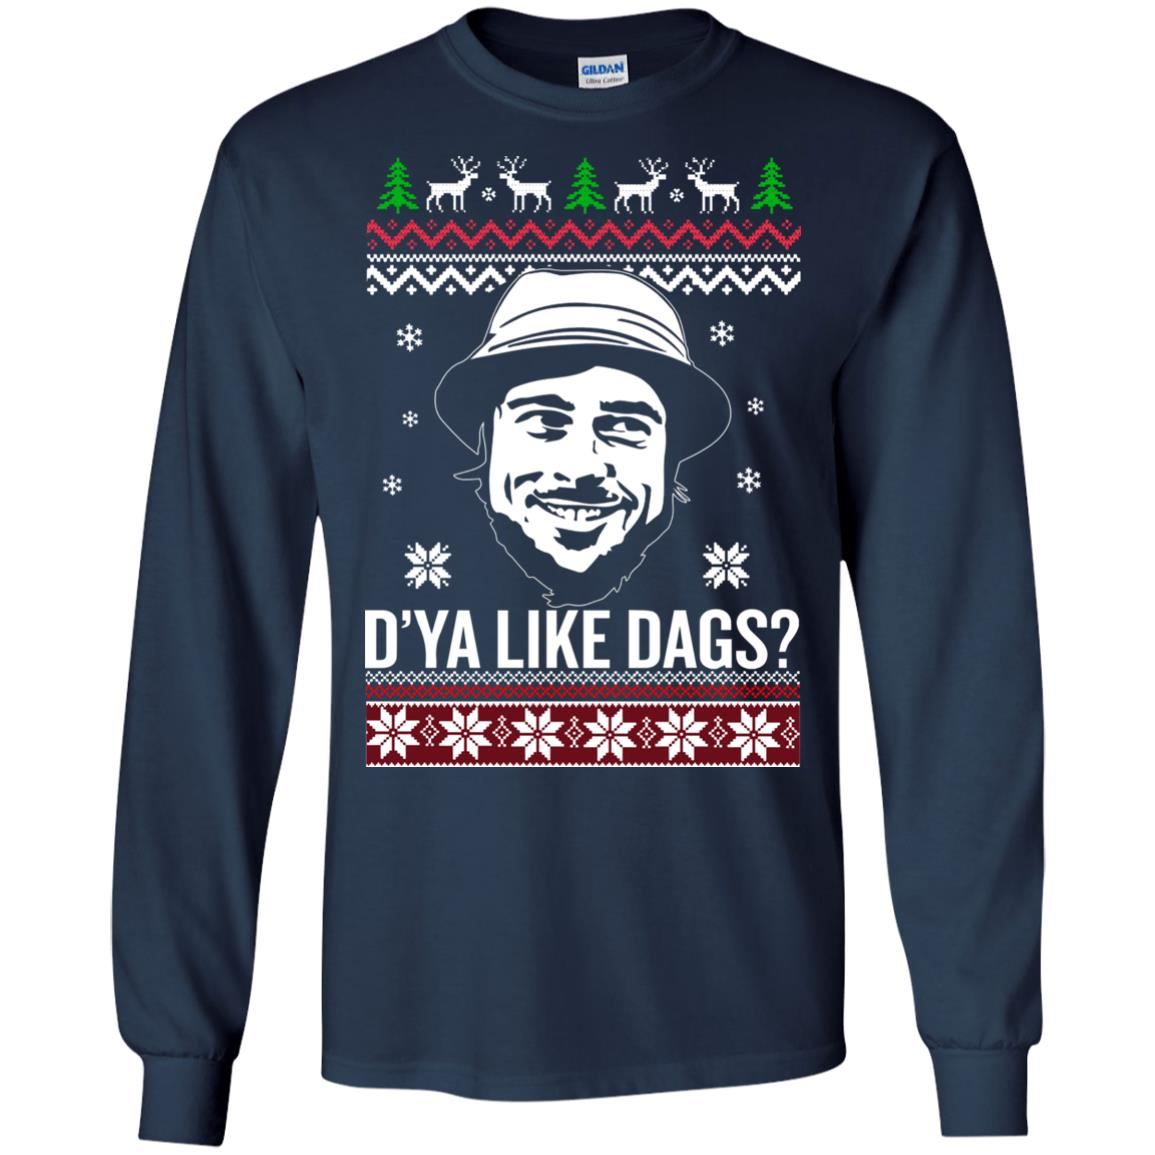 image 3153 - The Snatch D'ya like Dags Ugly Sweater, Christmas Sweatshirt